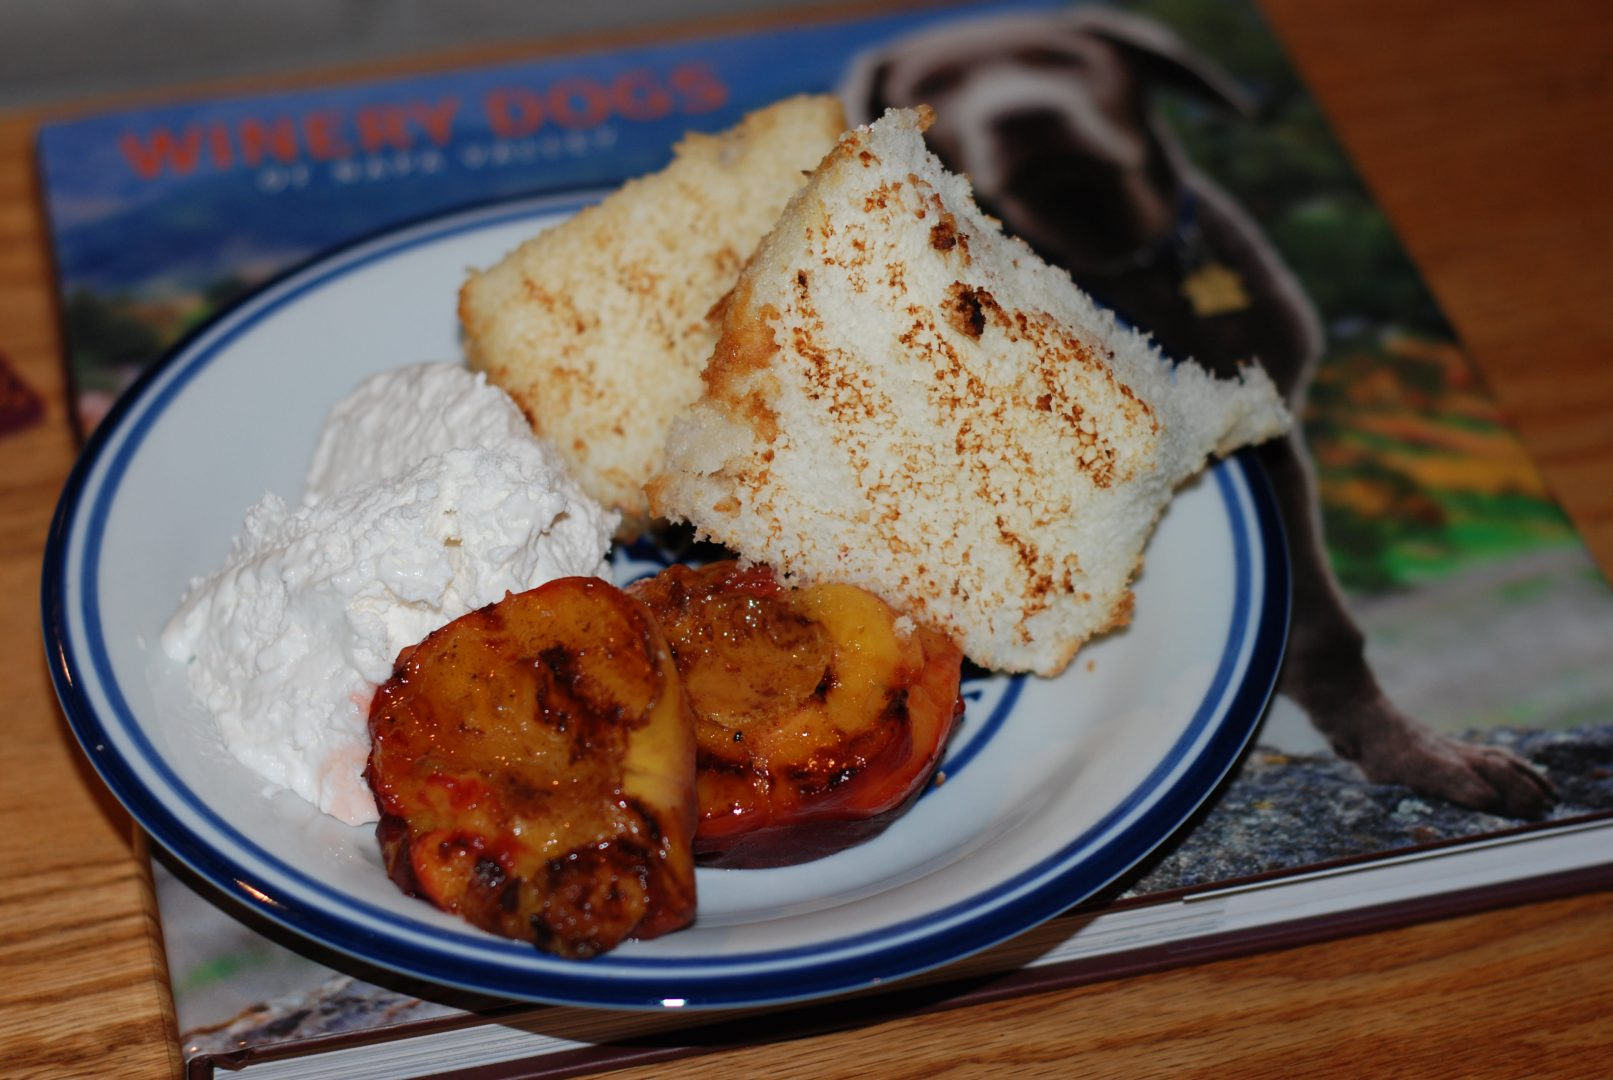 Dessert on the Grill: Grilled Peaches and Angel Food Cake